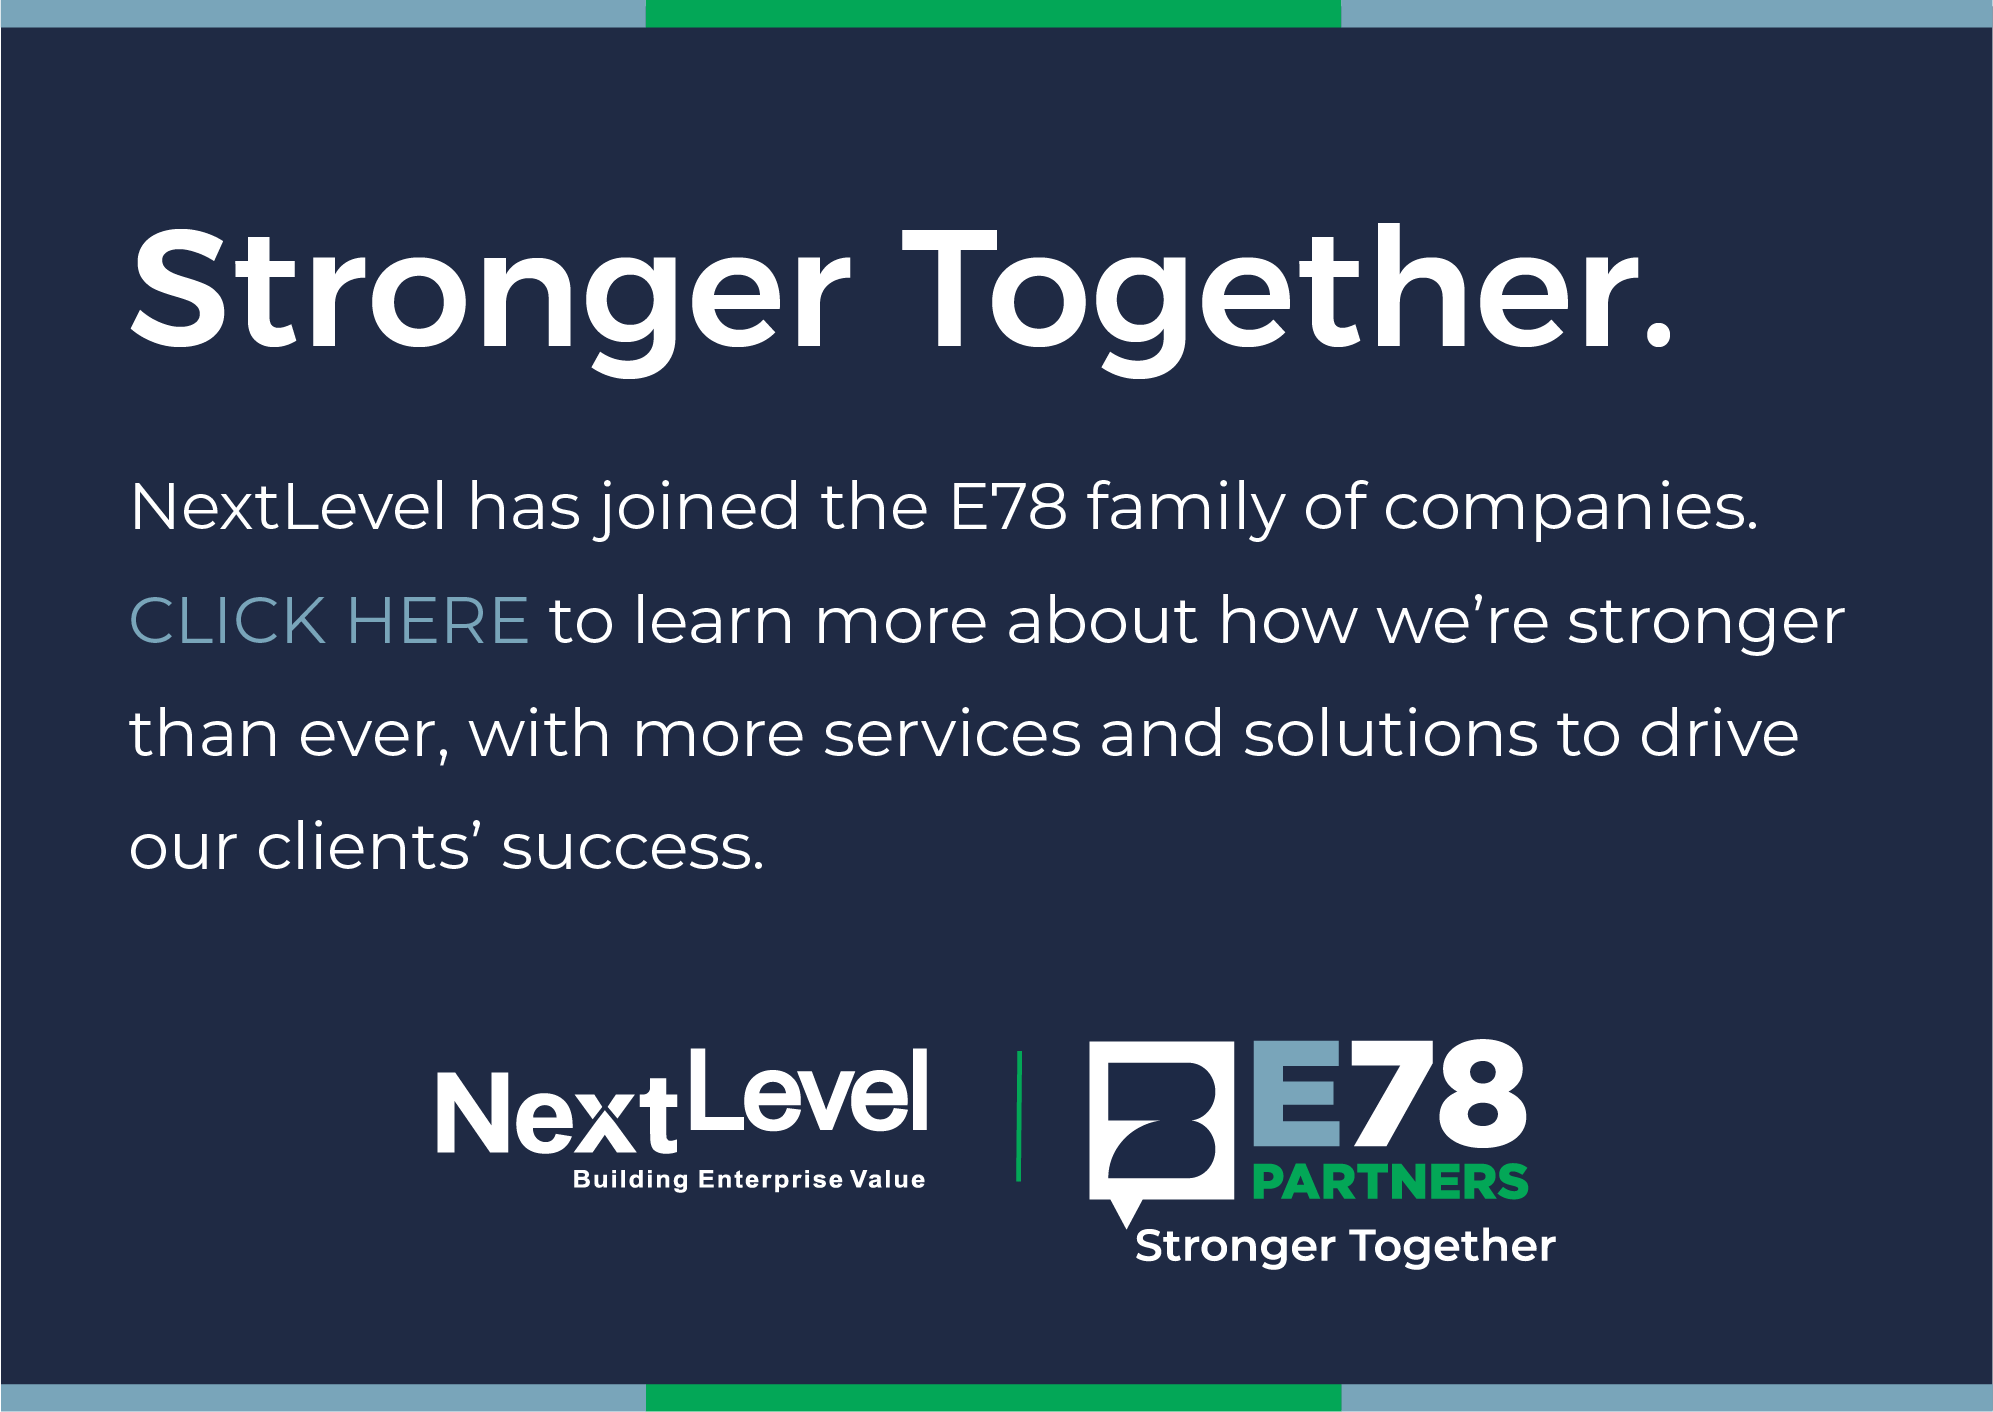 NextLevel and E78 are Stronger Together